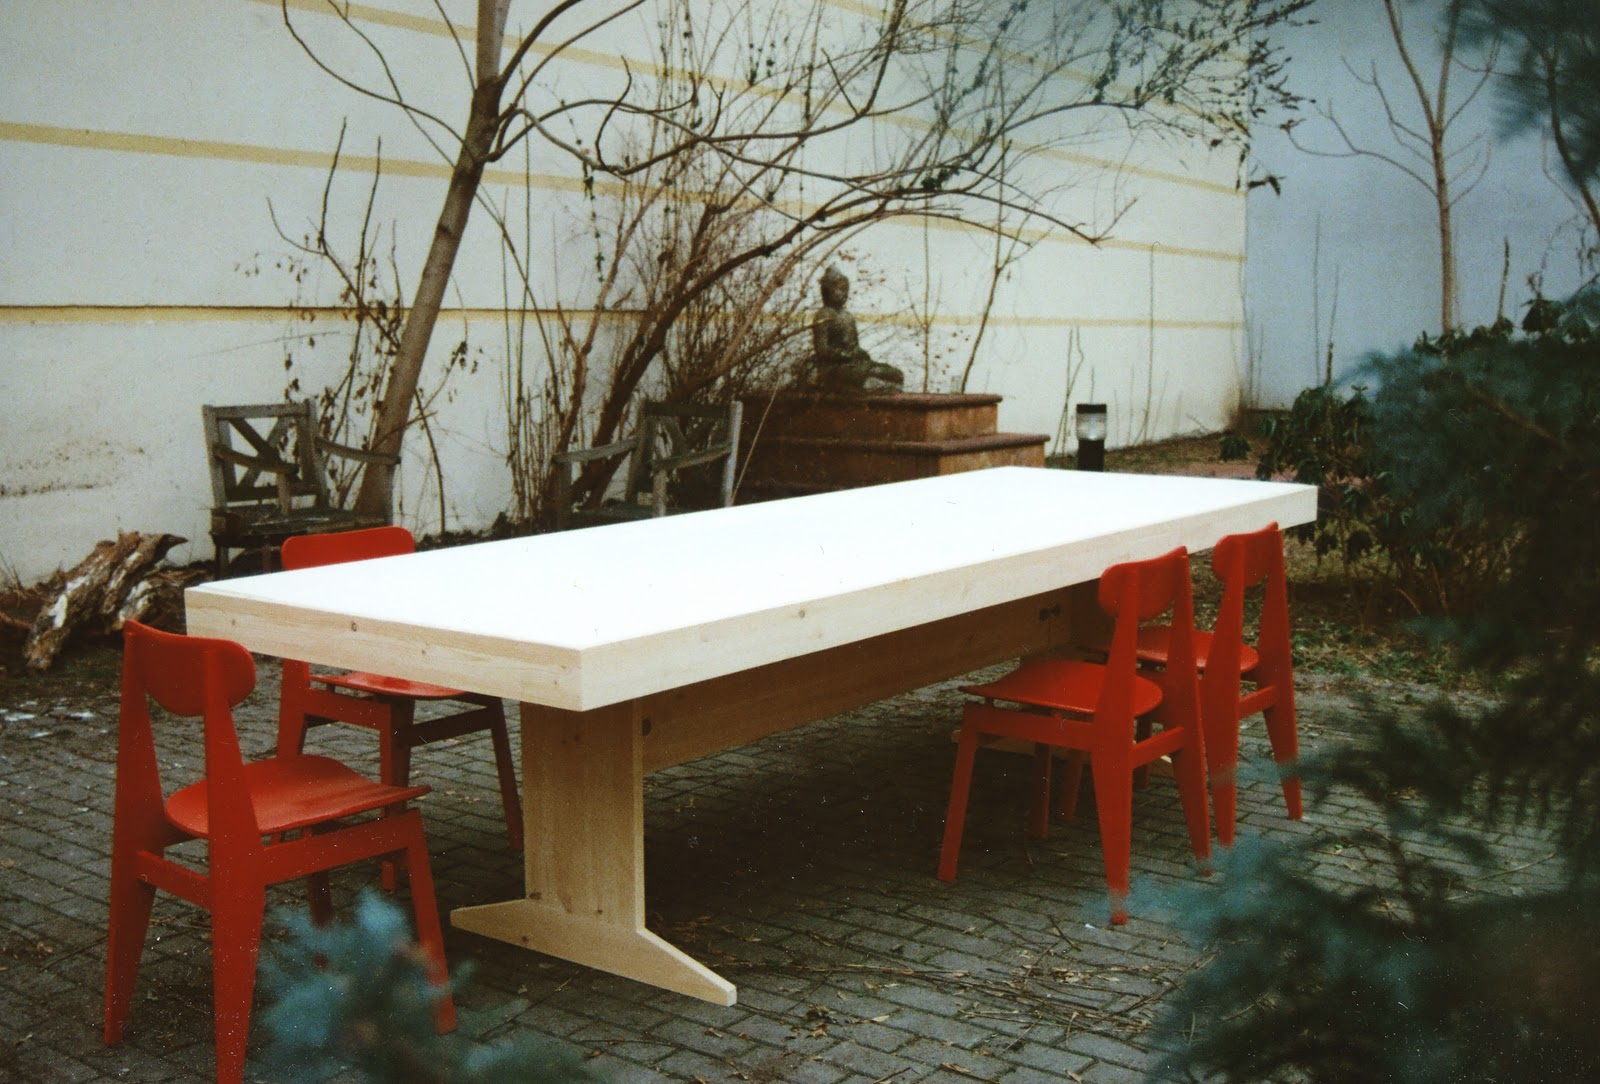 Hartz iv möbel: piscator table